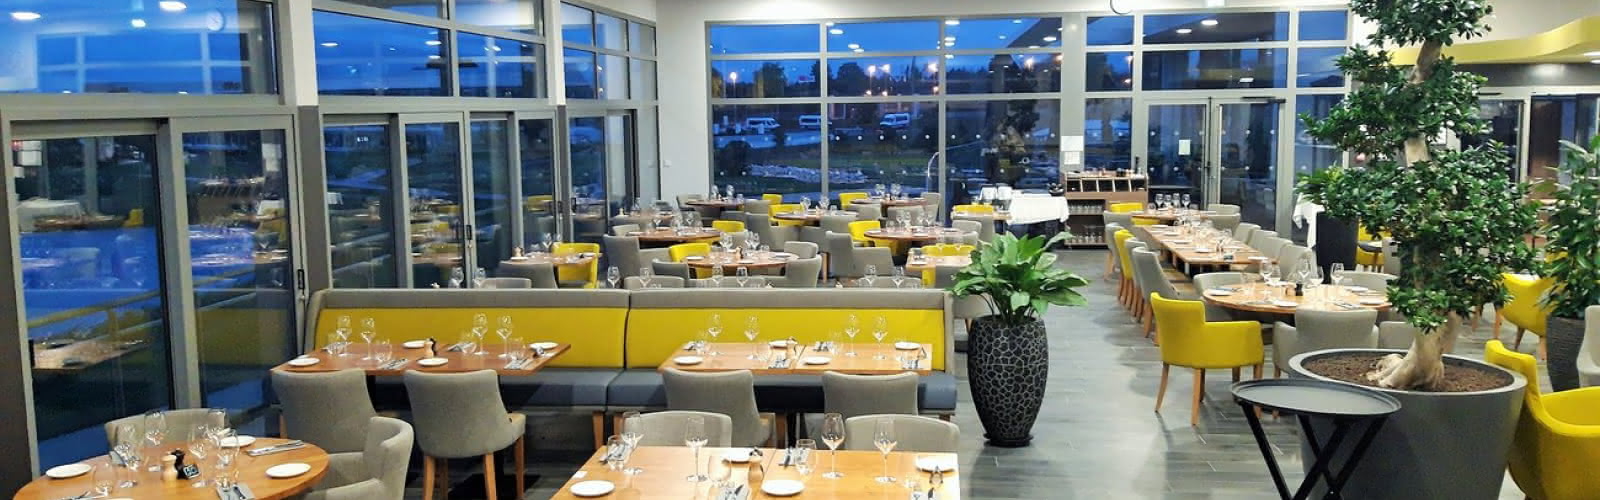 Restaurant Golf de Roissy